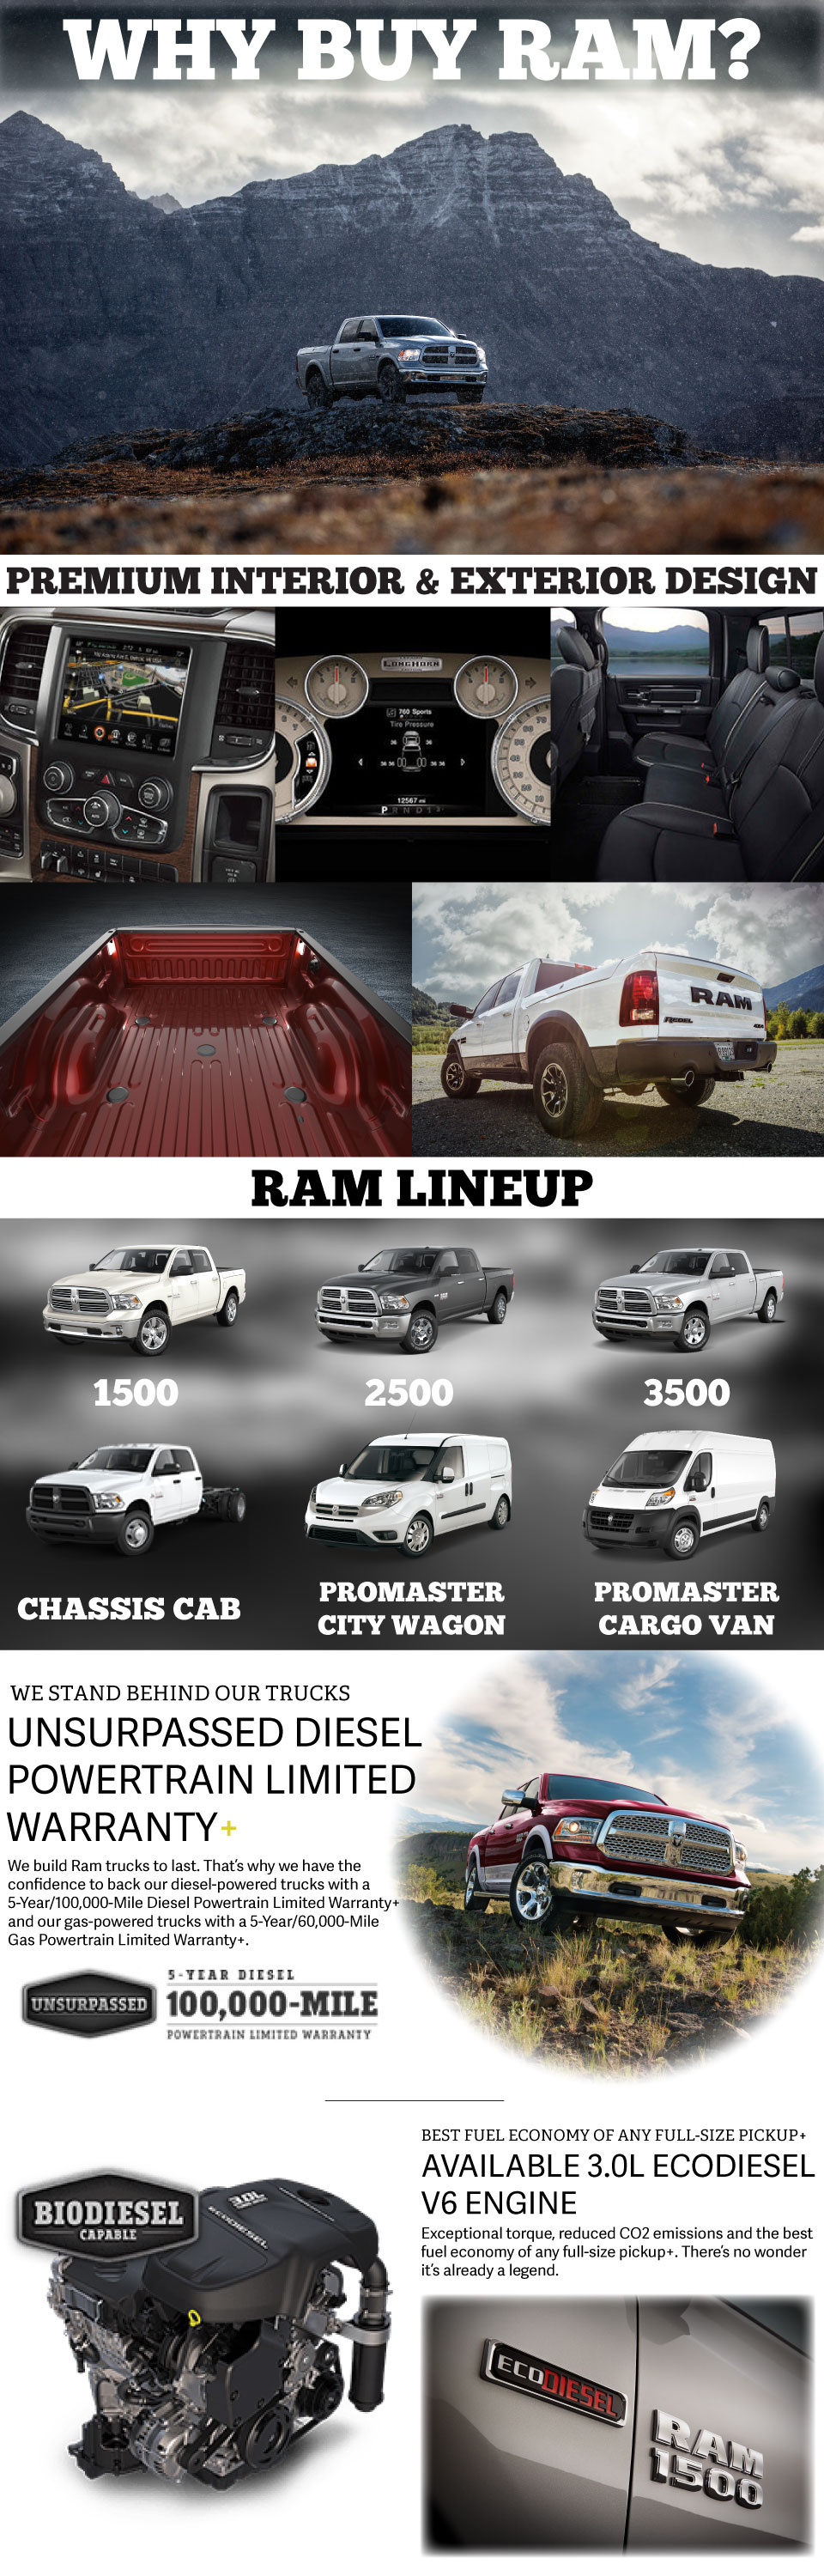 Buy a Ram truck at Heritage Chrysler Dodge Jeep Ram of Logan in Logan, UT